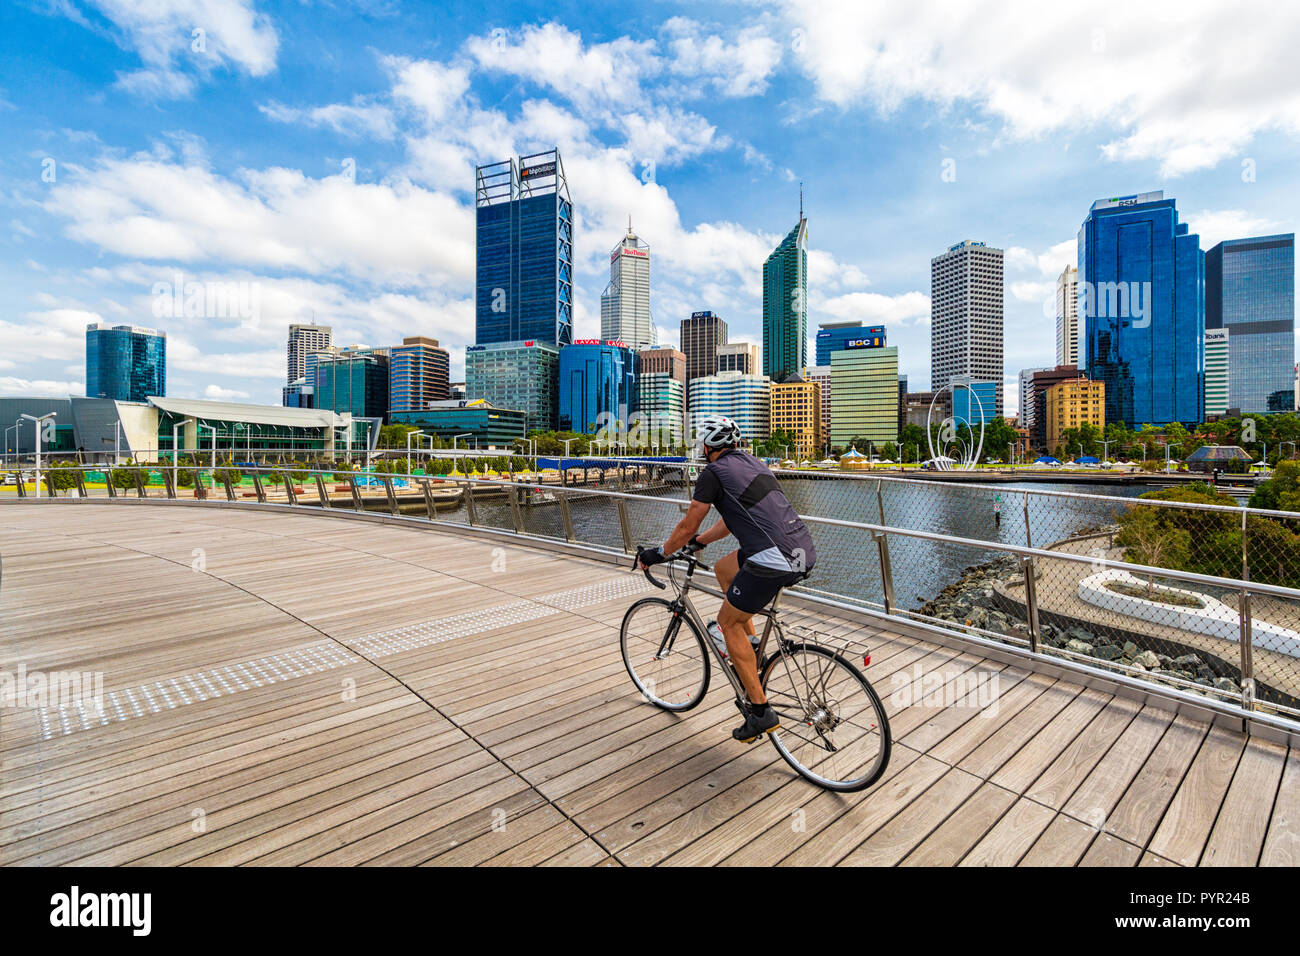 A man cycling over Elizabeth Quay Bridge with a view of Perth city in the background. Elizabeth Quay, Perth, Western Australia - Stock Image